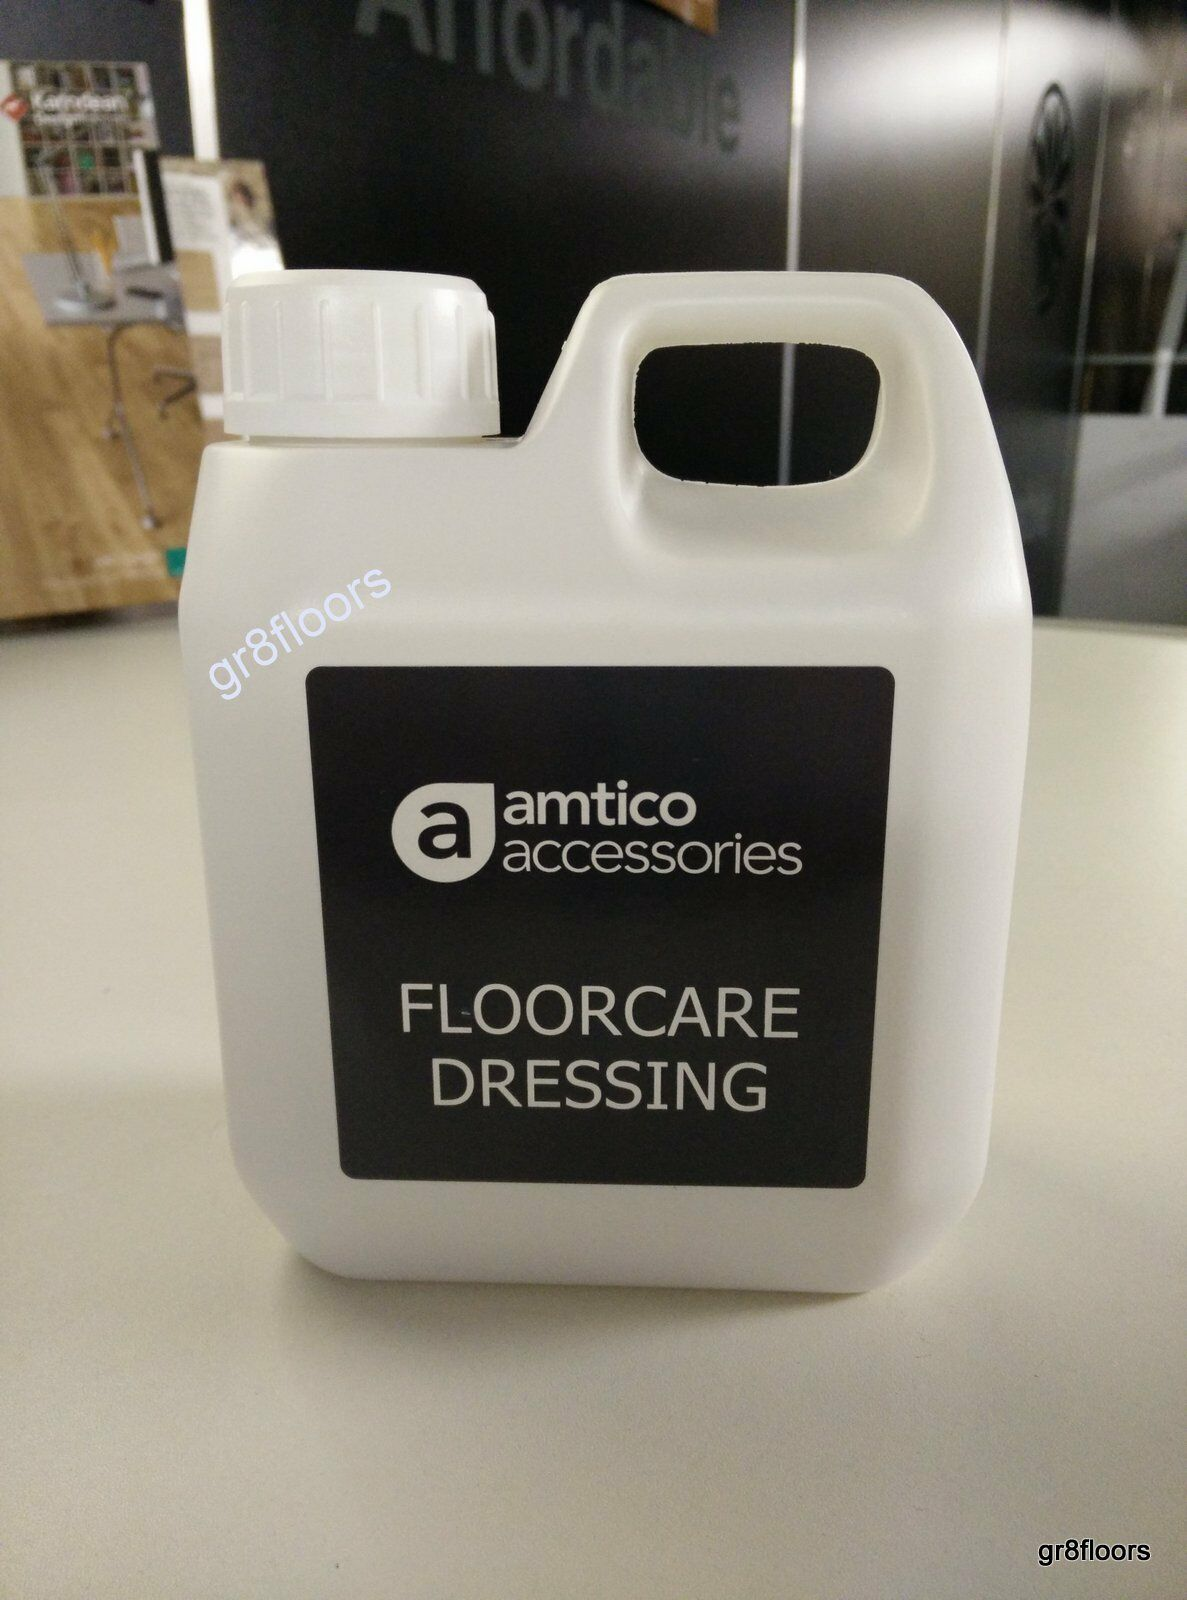 AMTICO INTERNATIONAL - FLOORCARE DRESSING - FLOOR ACCESSORY